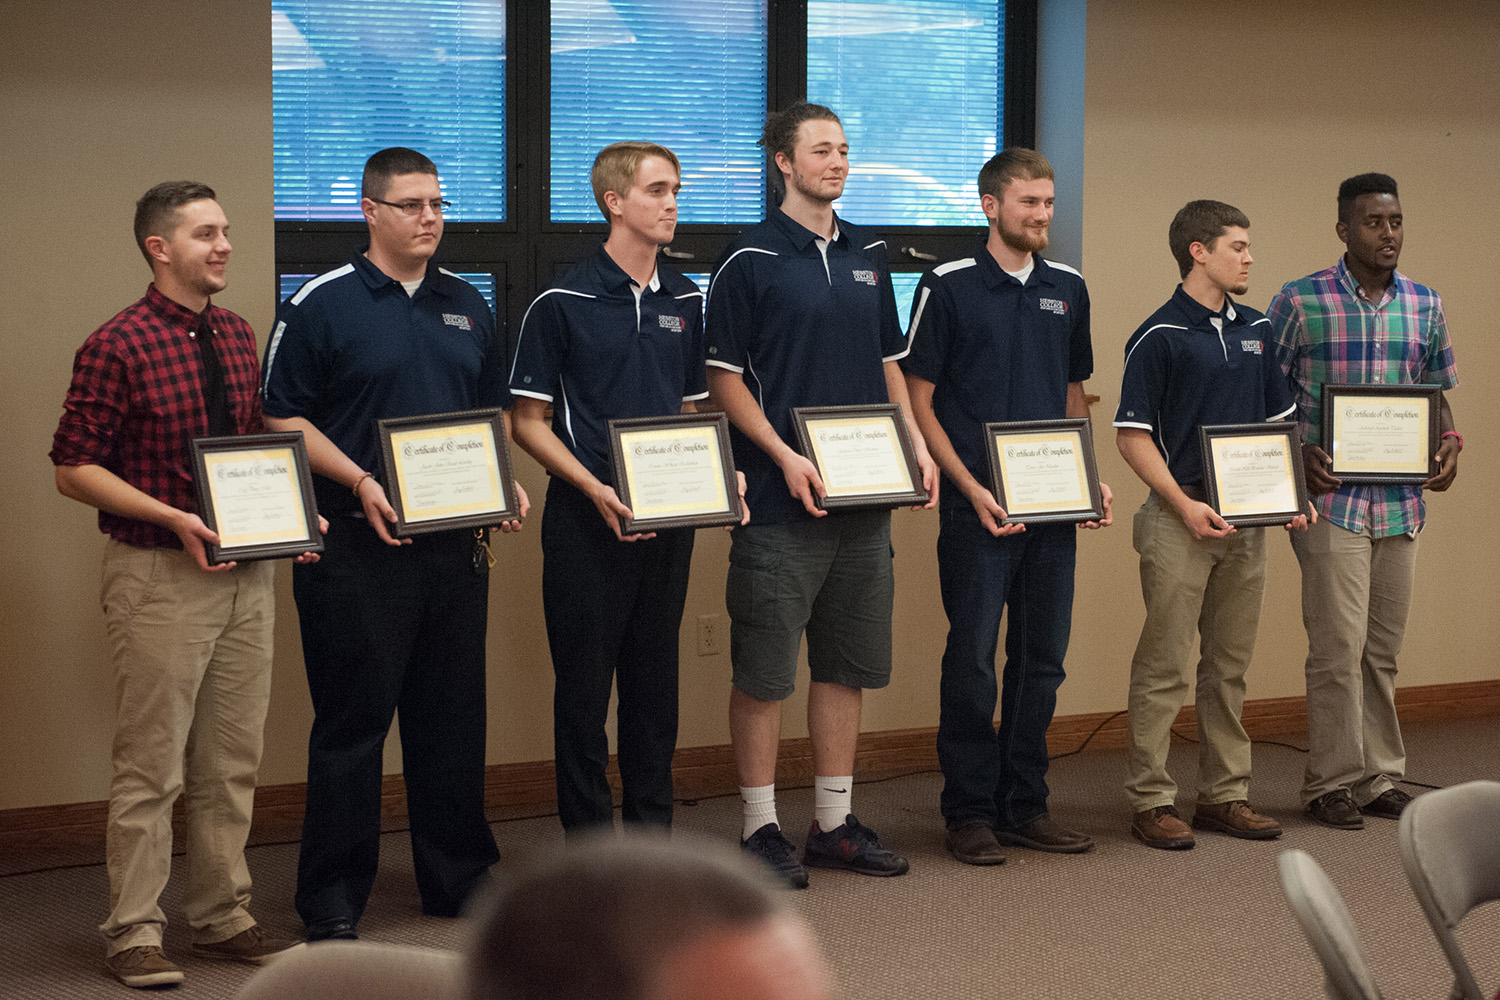 Aviation and Air Traffic Control students are recognized during a May 9 celebration for eight professional pilot graduates and one air traffic control graduate. Pictured are Cody Miller '15 (Wellman, Iowa), Jacob Leichty '15 (Auburn, Ind.), Connor Rockelman '15 (York, Pa.), Jeshurun Shuman '15 (Middletown, Pa.), Trevor Natalini '15 (Oronogo, Mo.) and Kendal Slabach Brubaker '15 (Harrisonburg, Va.).